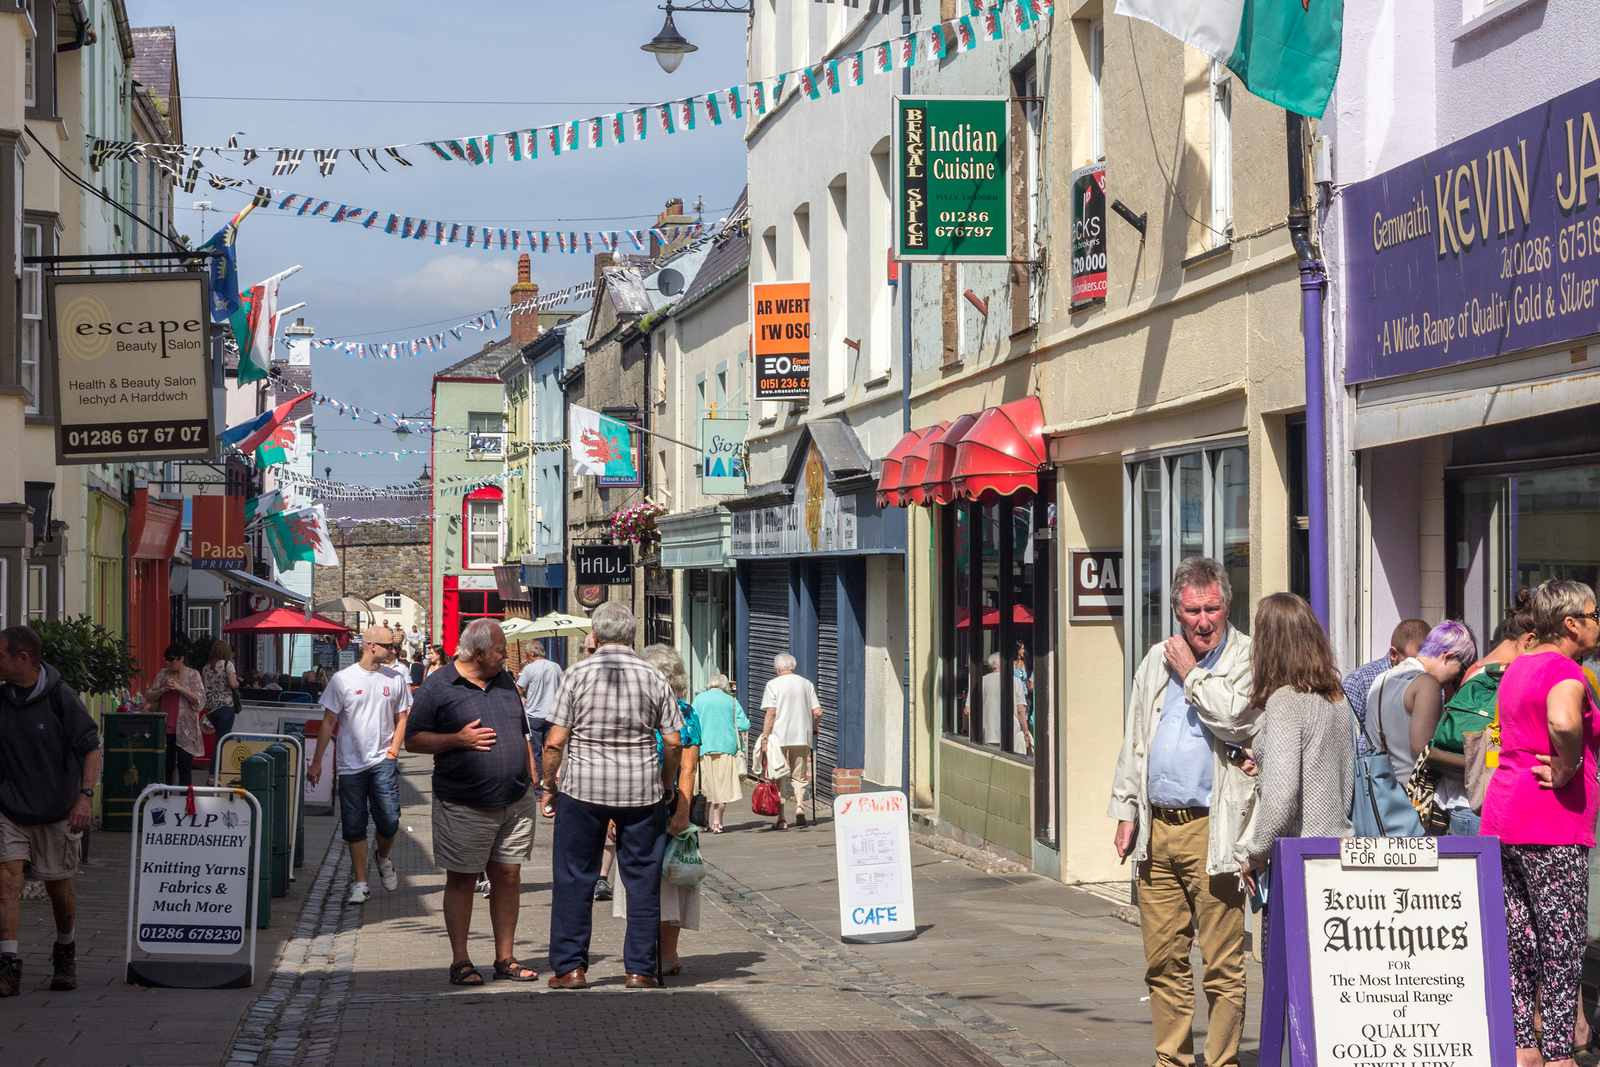 Welsh SMEs Are 'Most Community-Focused'